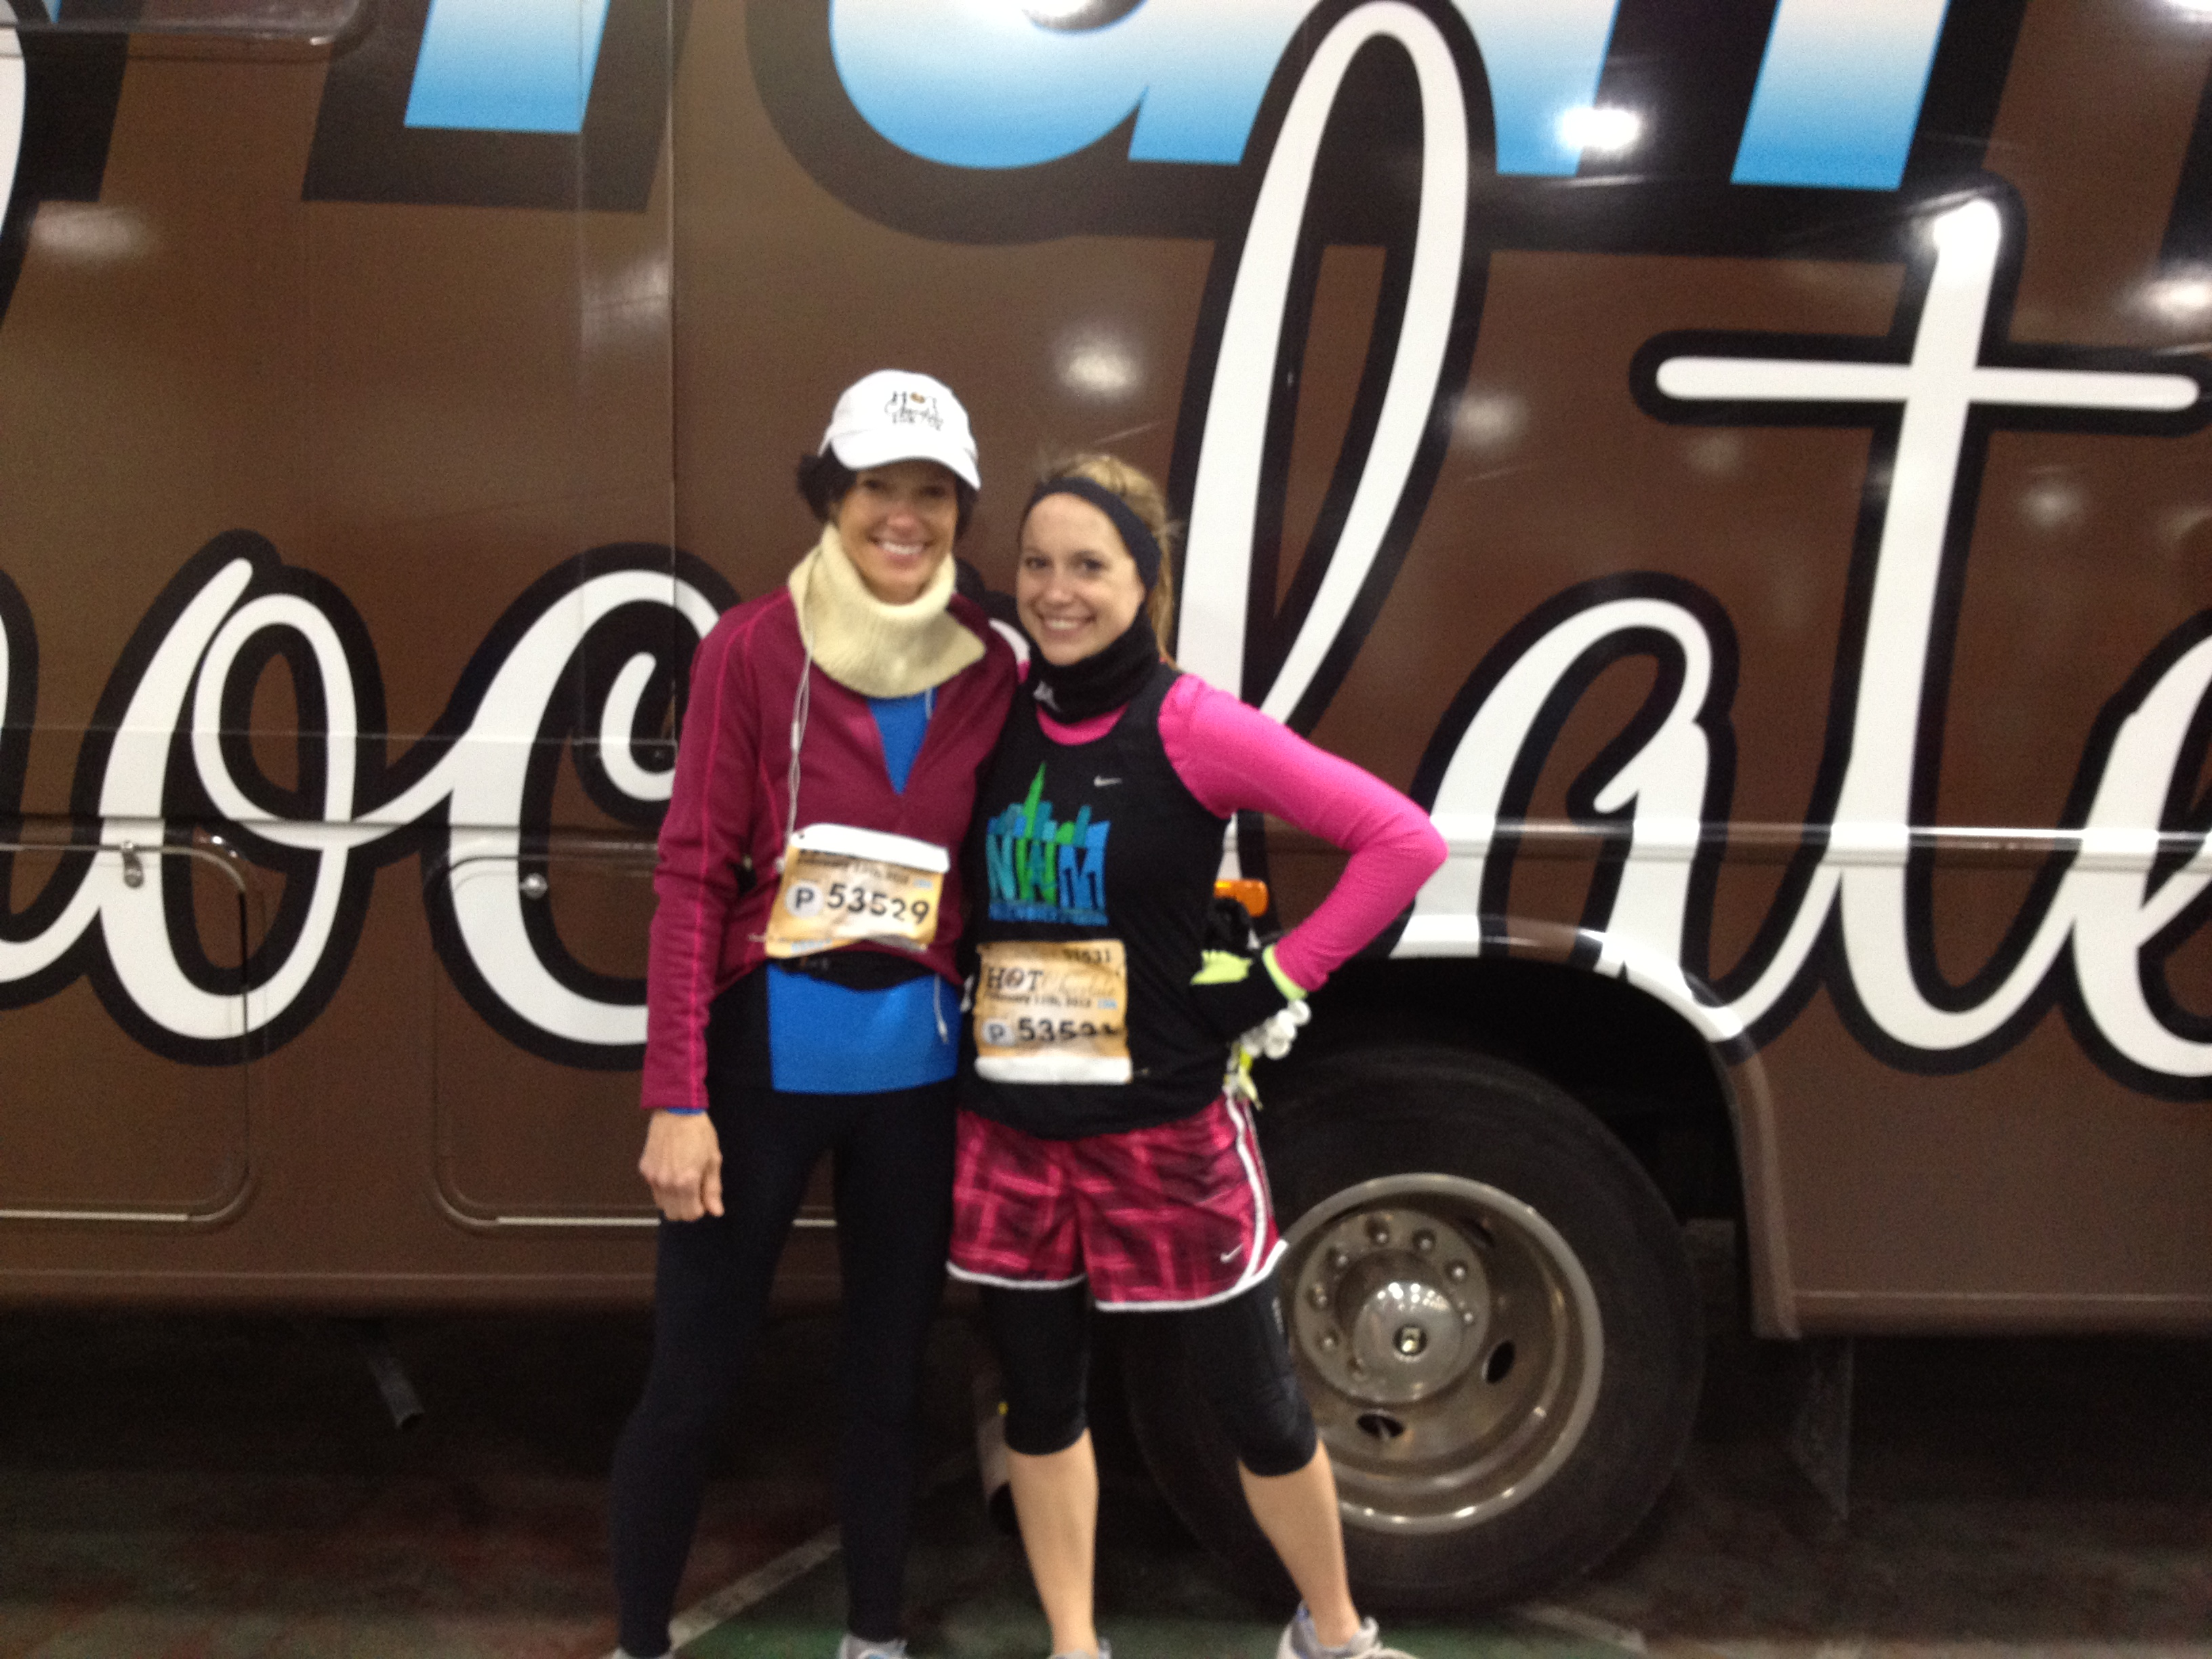 Hot Chocolate 15K Review | The Spunky Runner :: Jesus • Sweat • Play